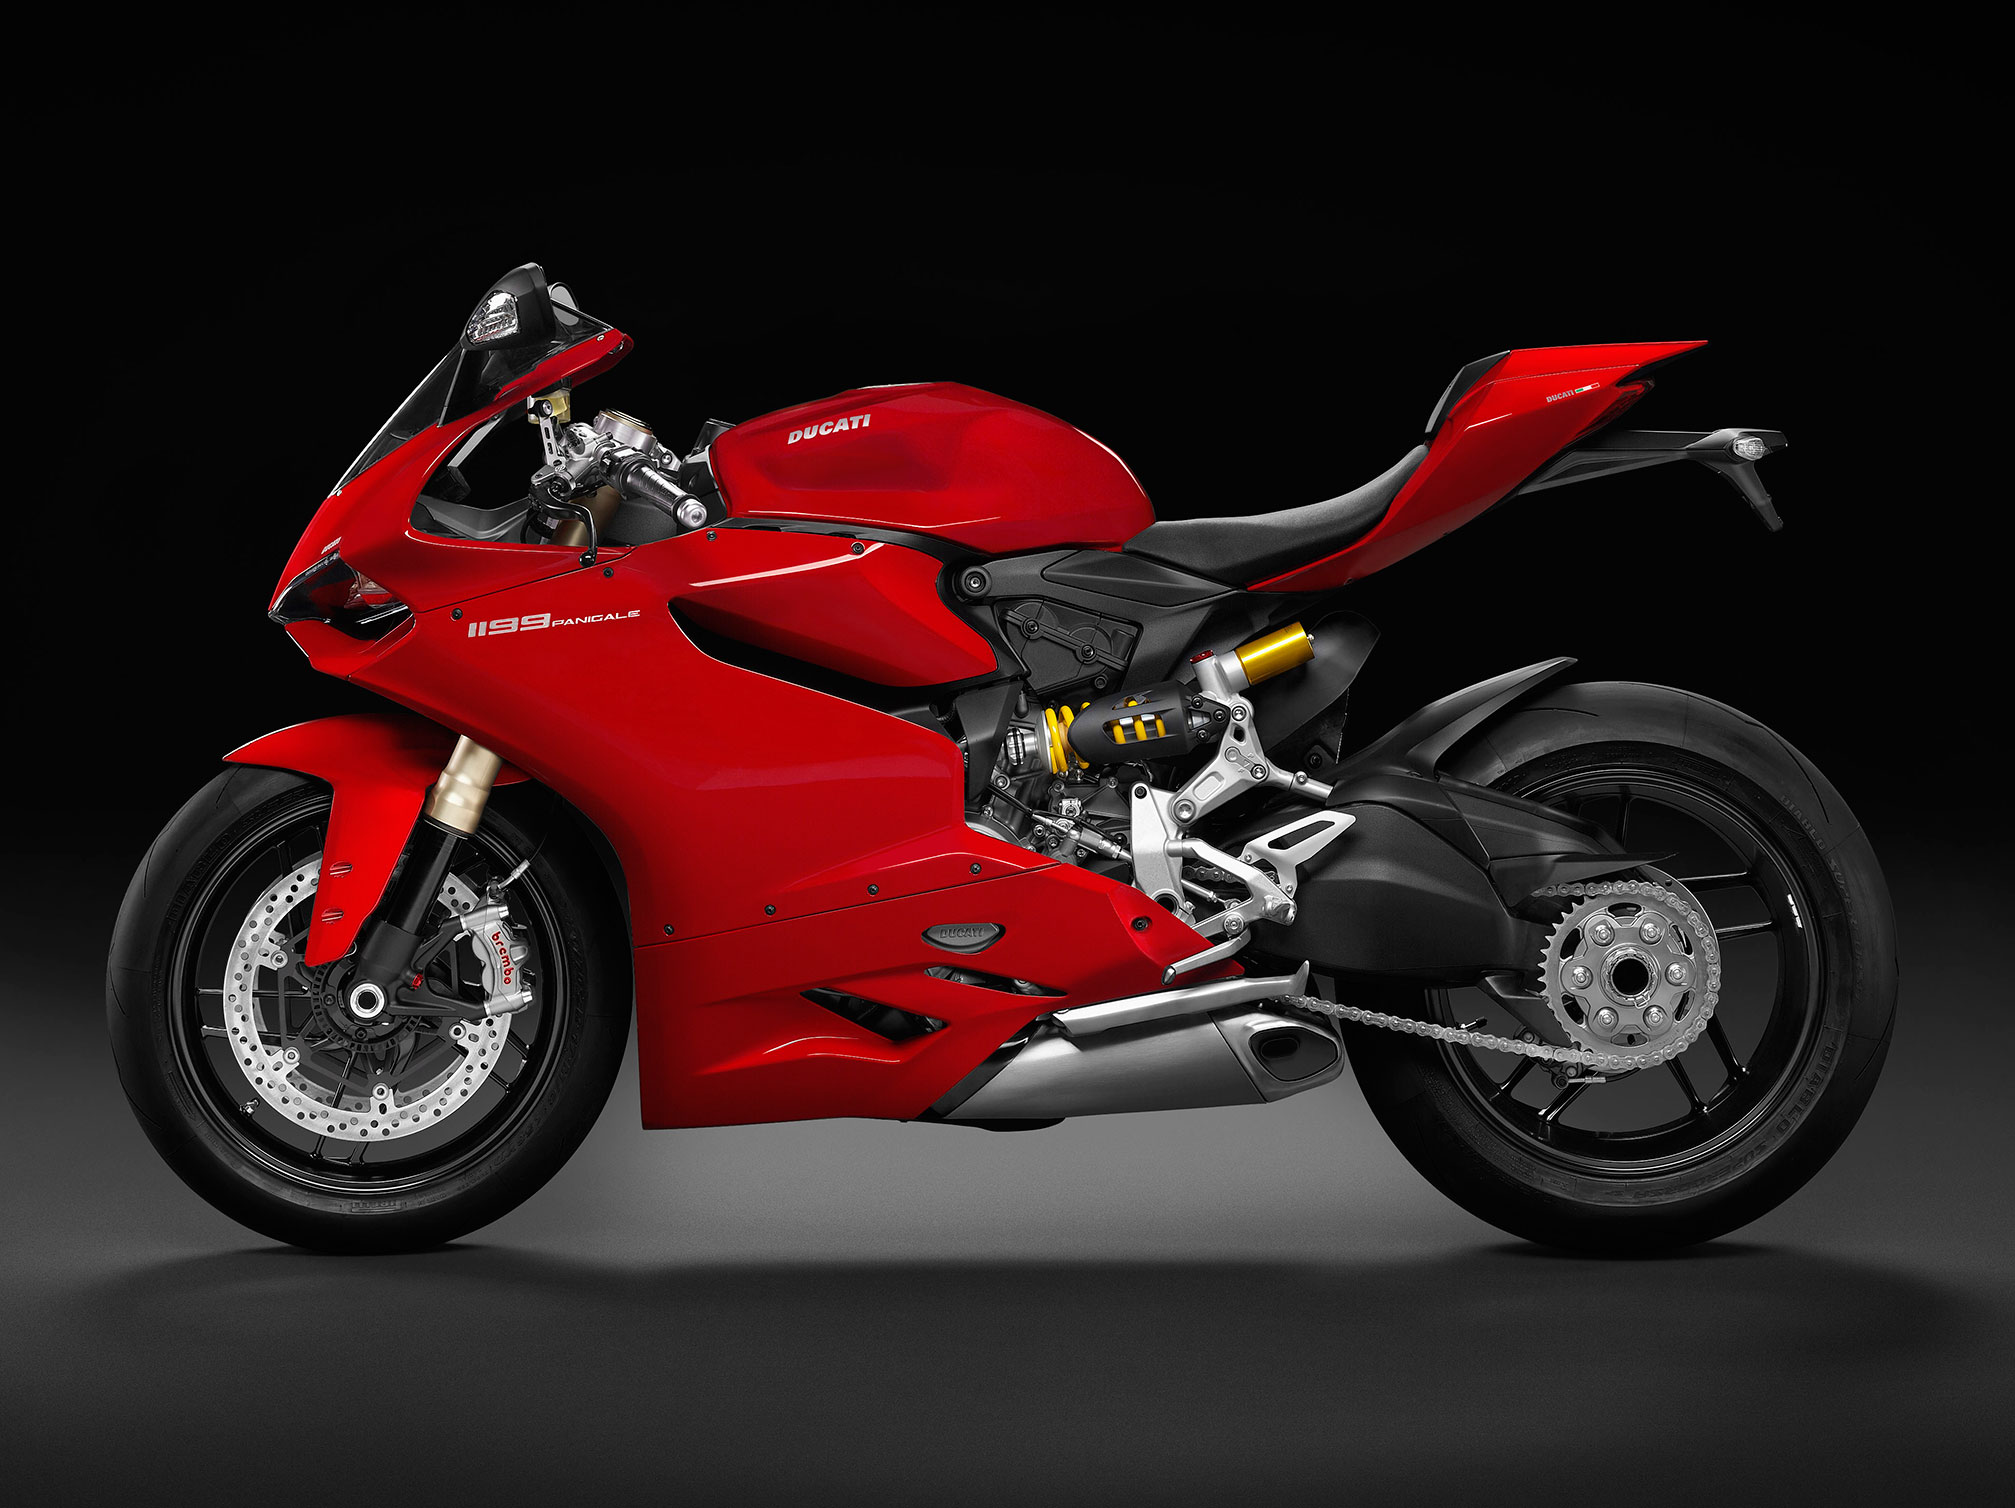 2015 Ducati Superbike 1199 Panigale Review